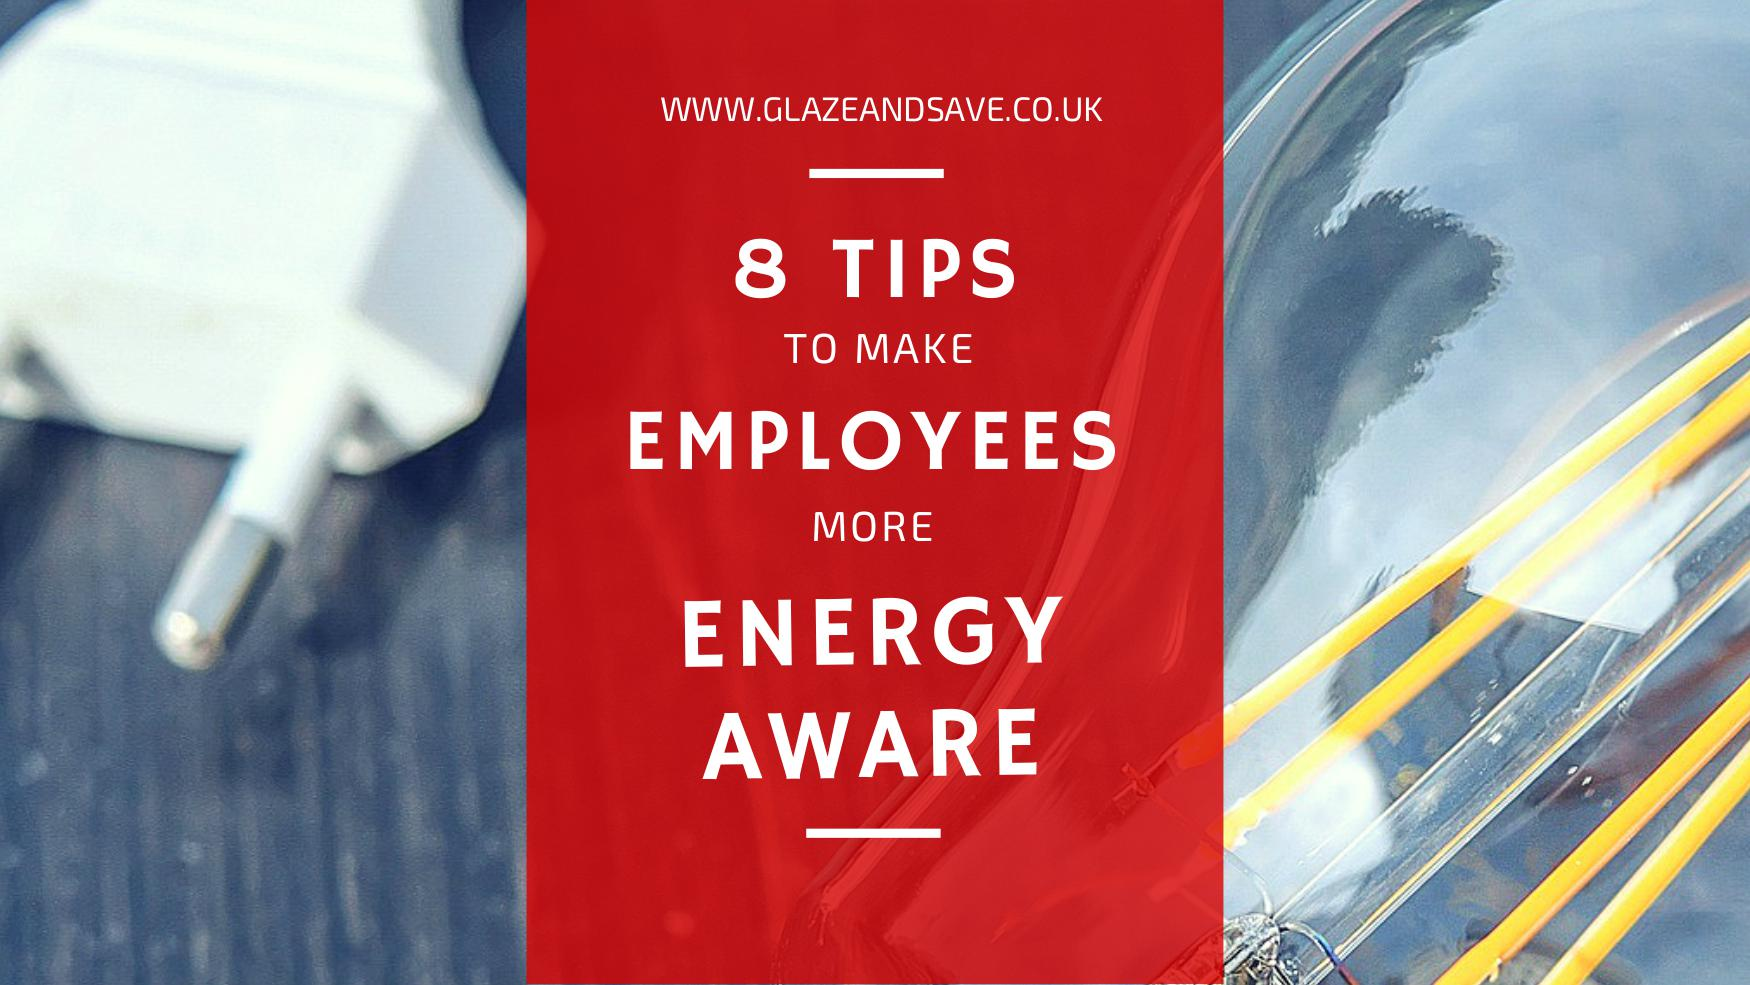 8 tips to make employees more energy aware from Glaze and Save bespoke secondary glazing and draughtproofing in Perth, Scotland and across the UK.